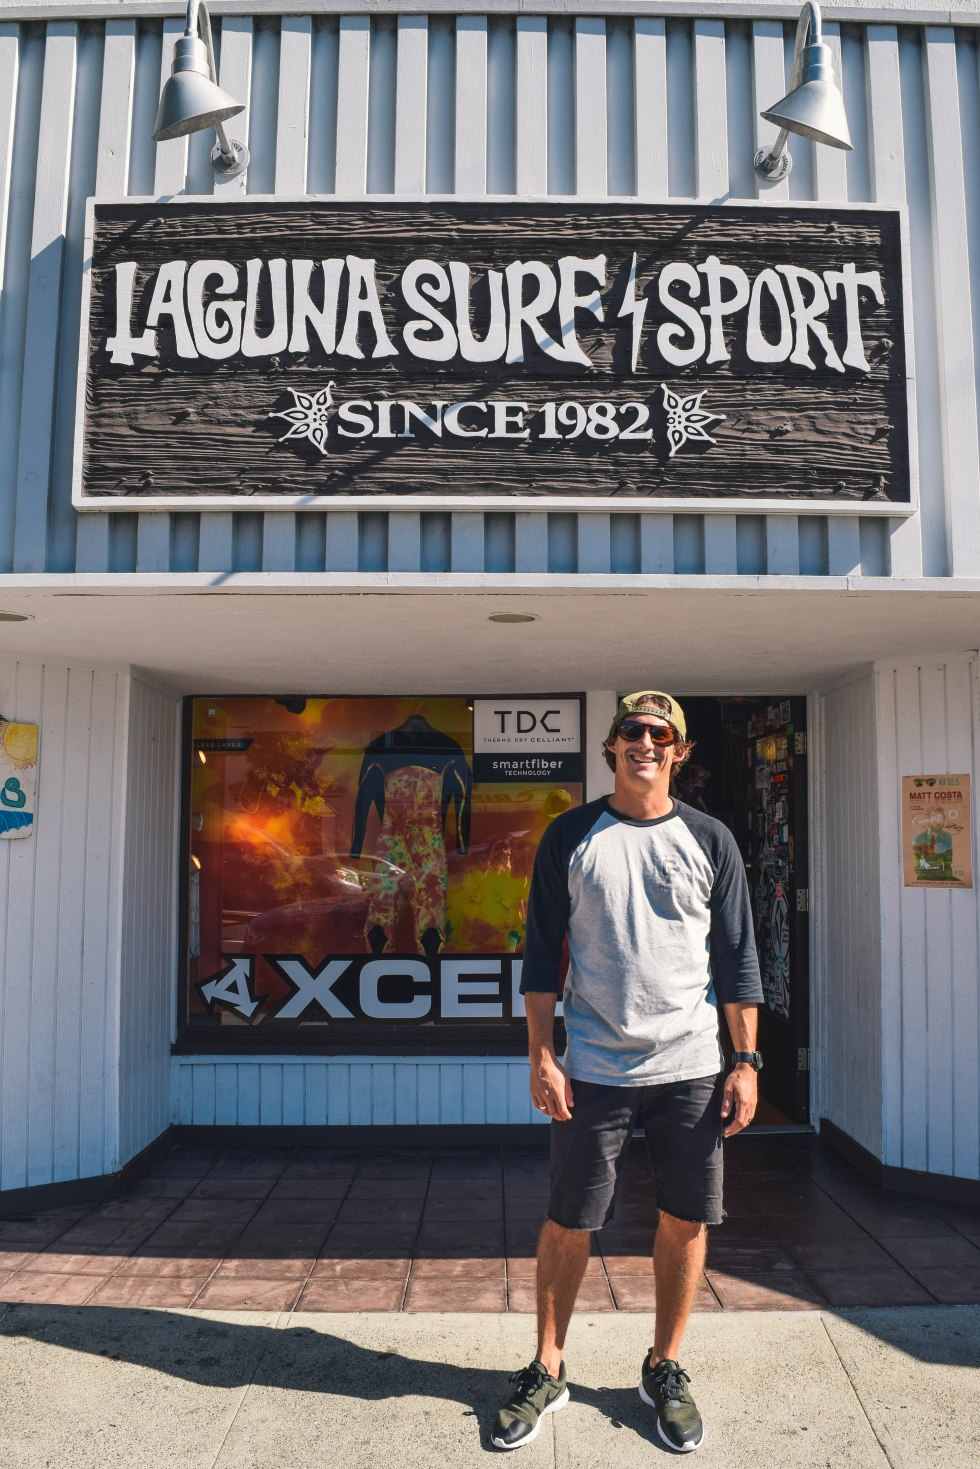 Jason in front of Laguna Surf & Sport in Laguna Beach, Ca